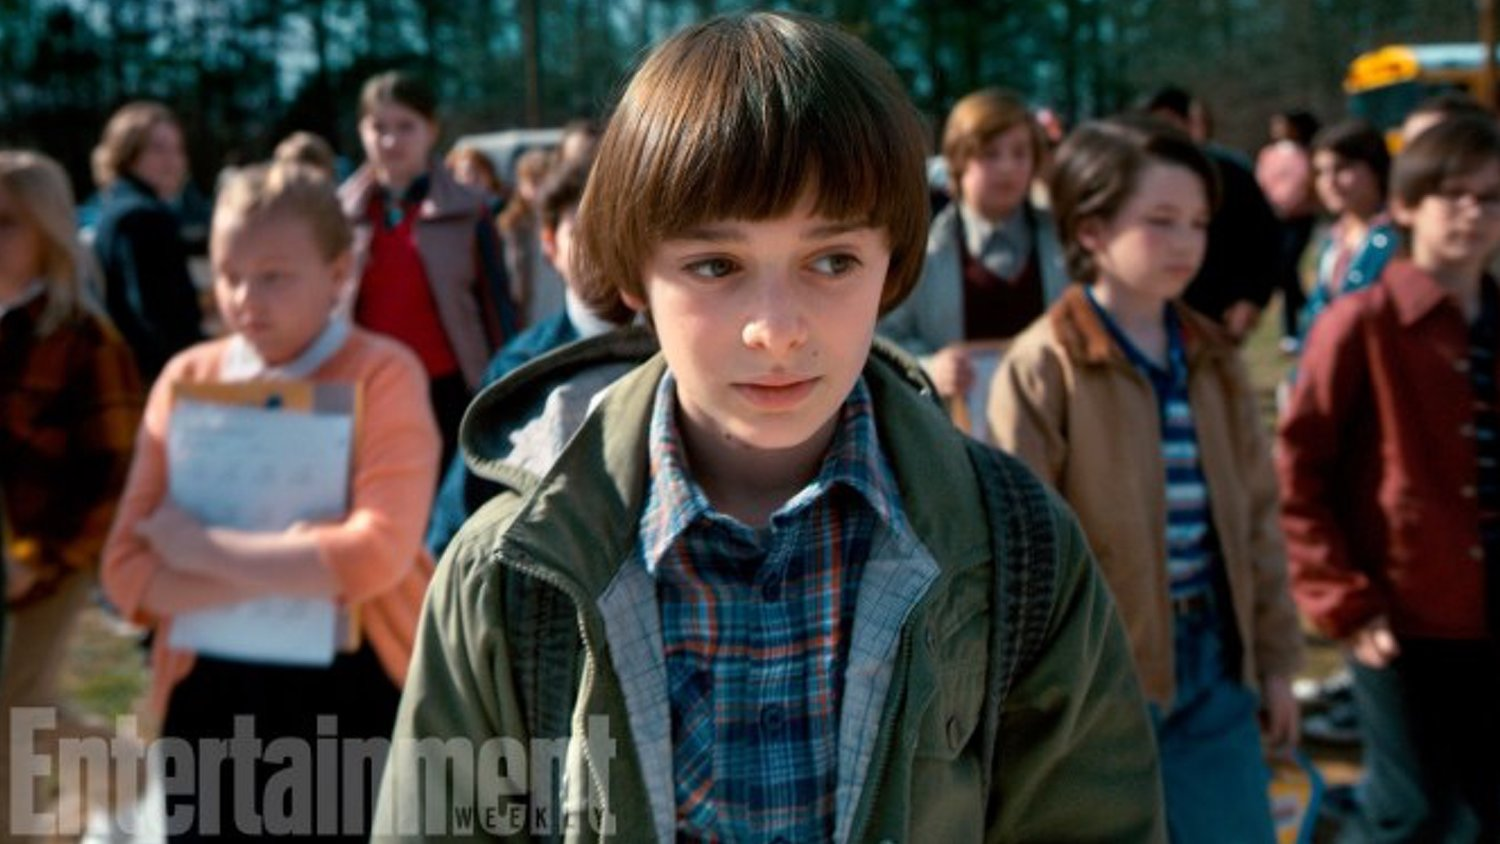 Several New Photos Released for STRANGER THINGS Season 2